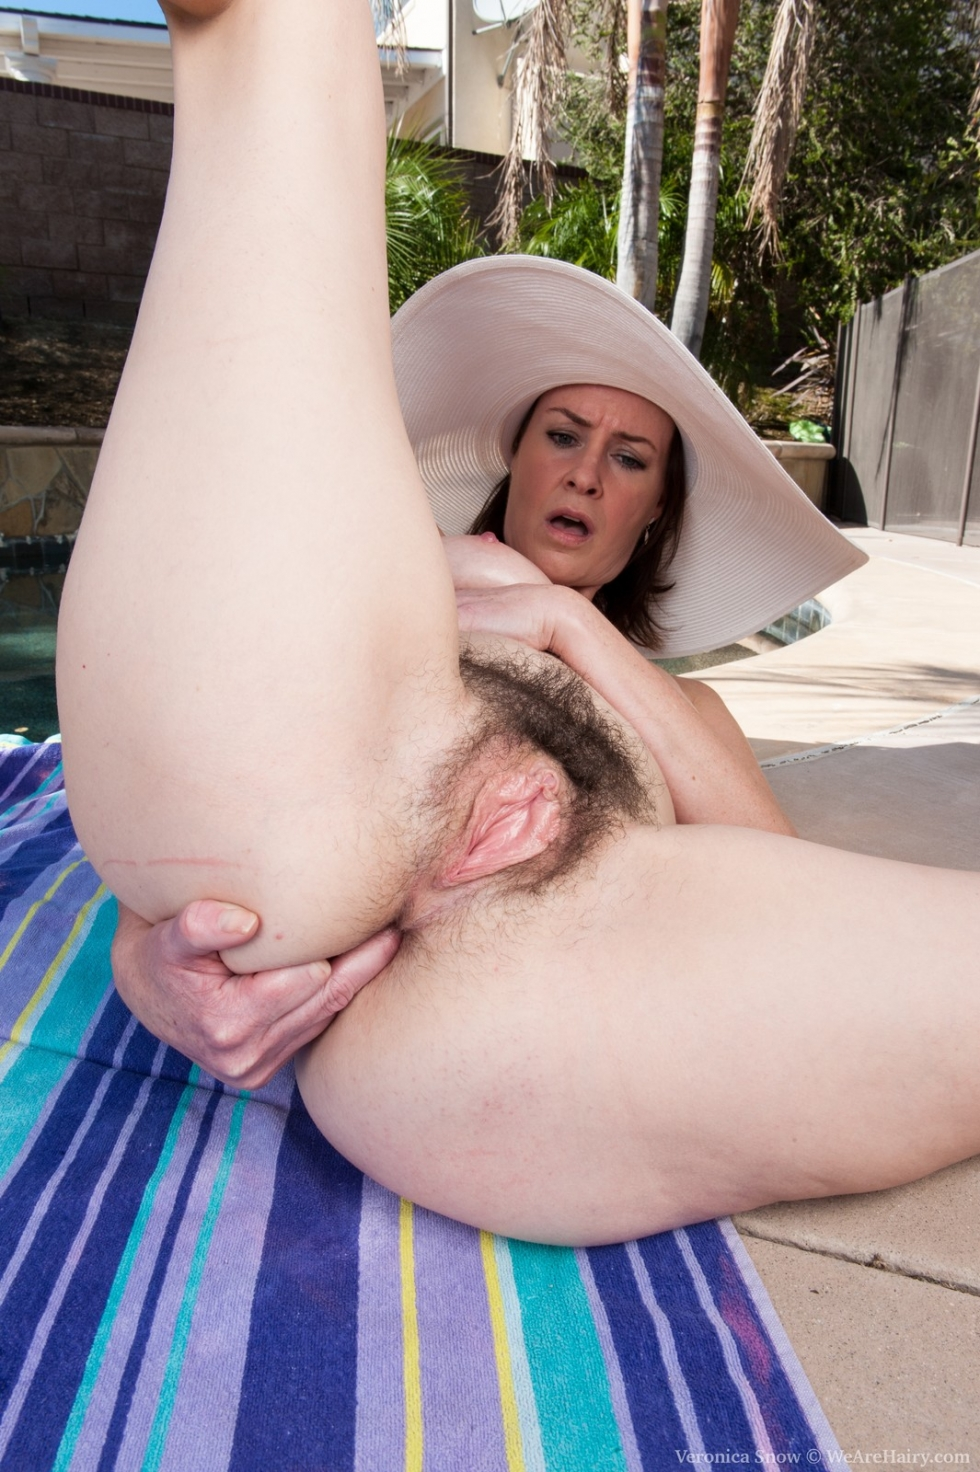 Simply Mature hairy pussy by the pool